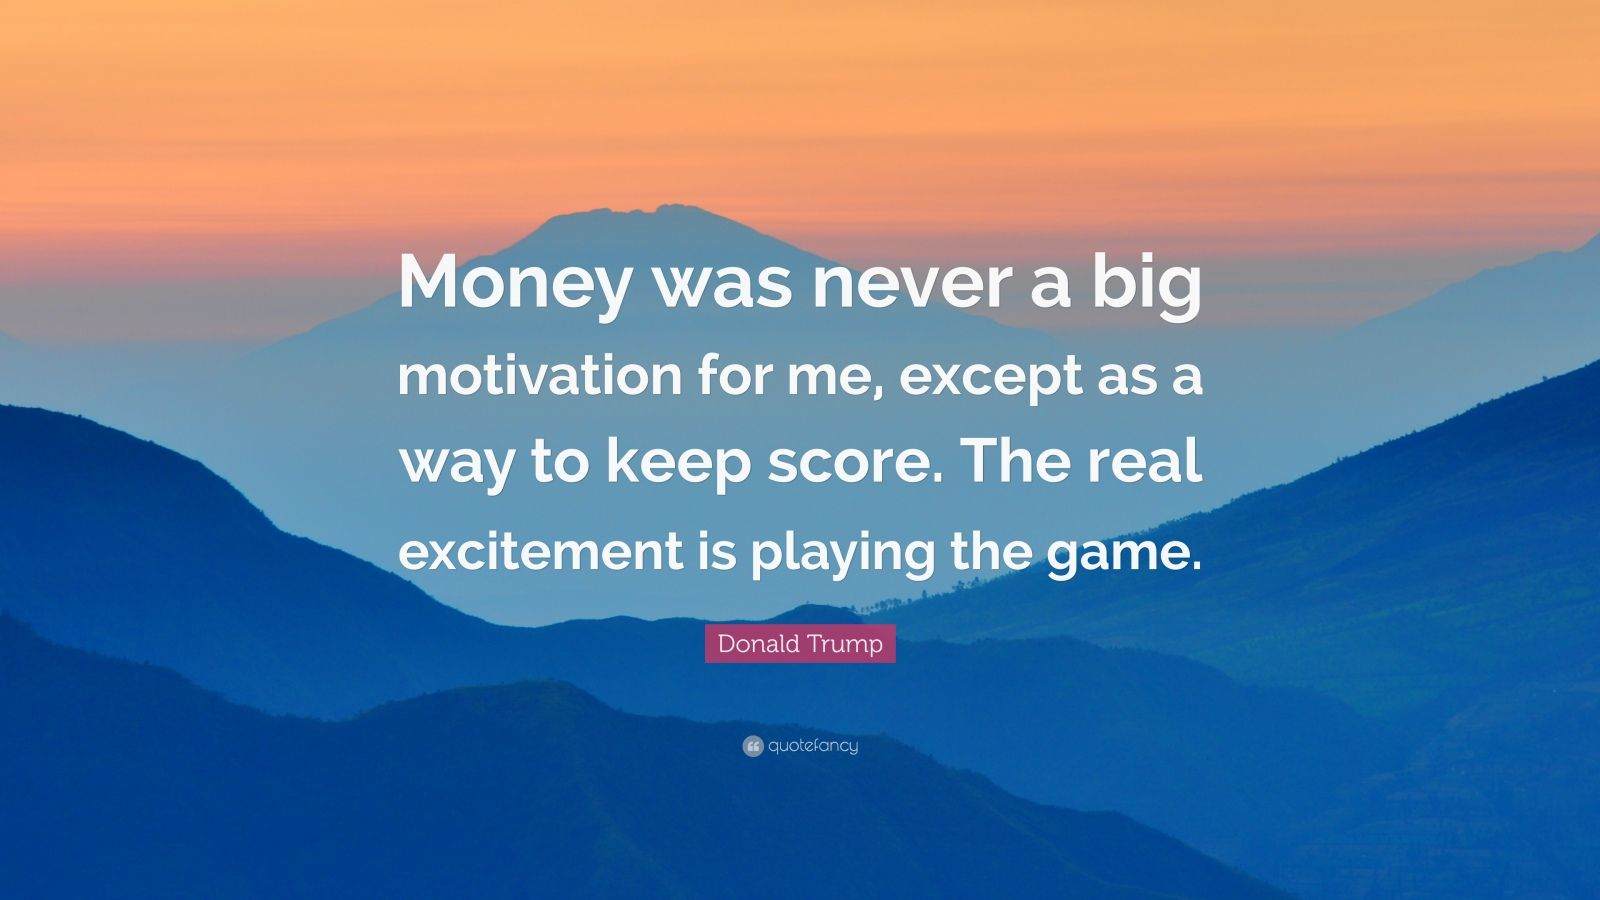 """Donald Trump Quote: """"Money was never a big motivation for me, except as a way to keep score. The real excitement is playing the game."""""""